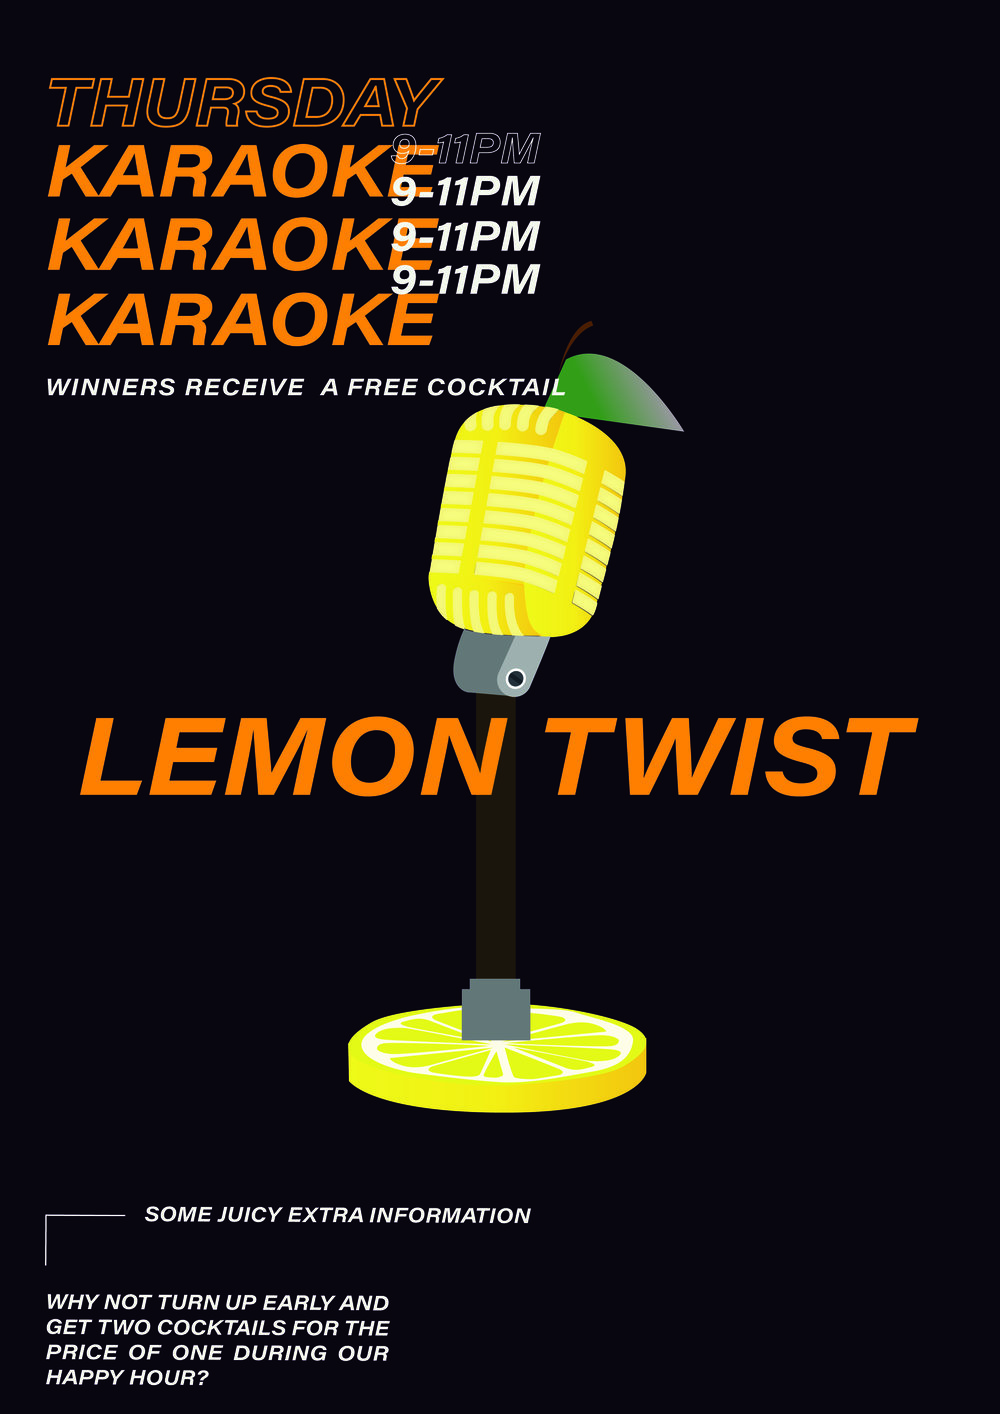 LT_Karaoke_Poster_7th_jan-01.jpg